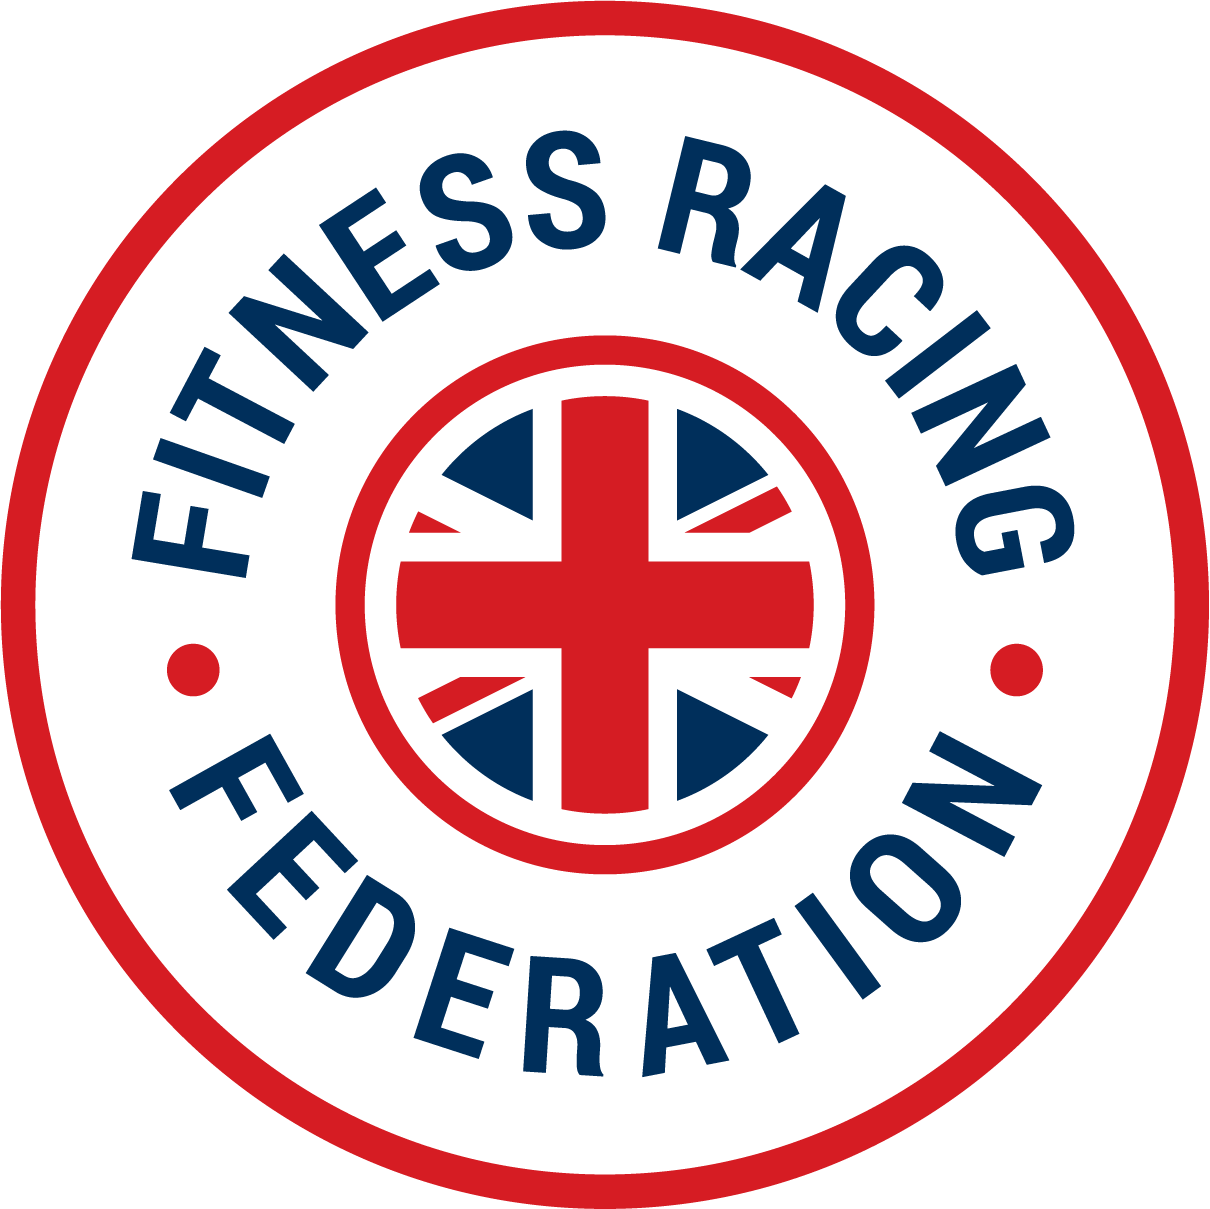 Fitness Racing Federation (United Kingdom)